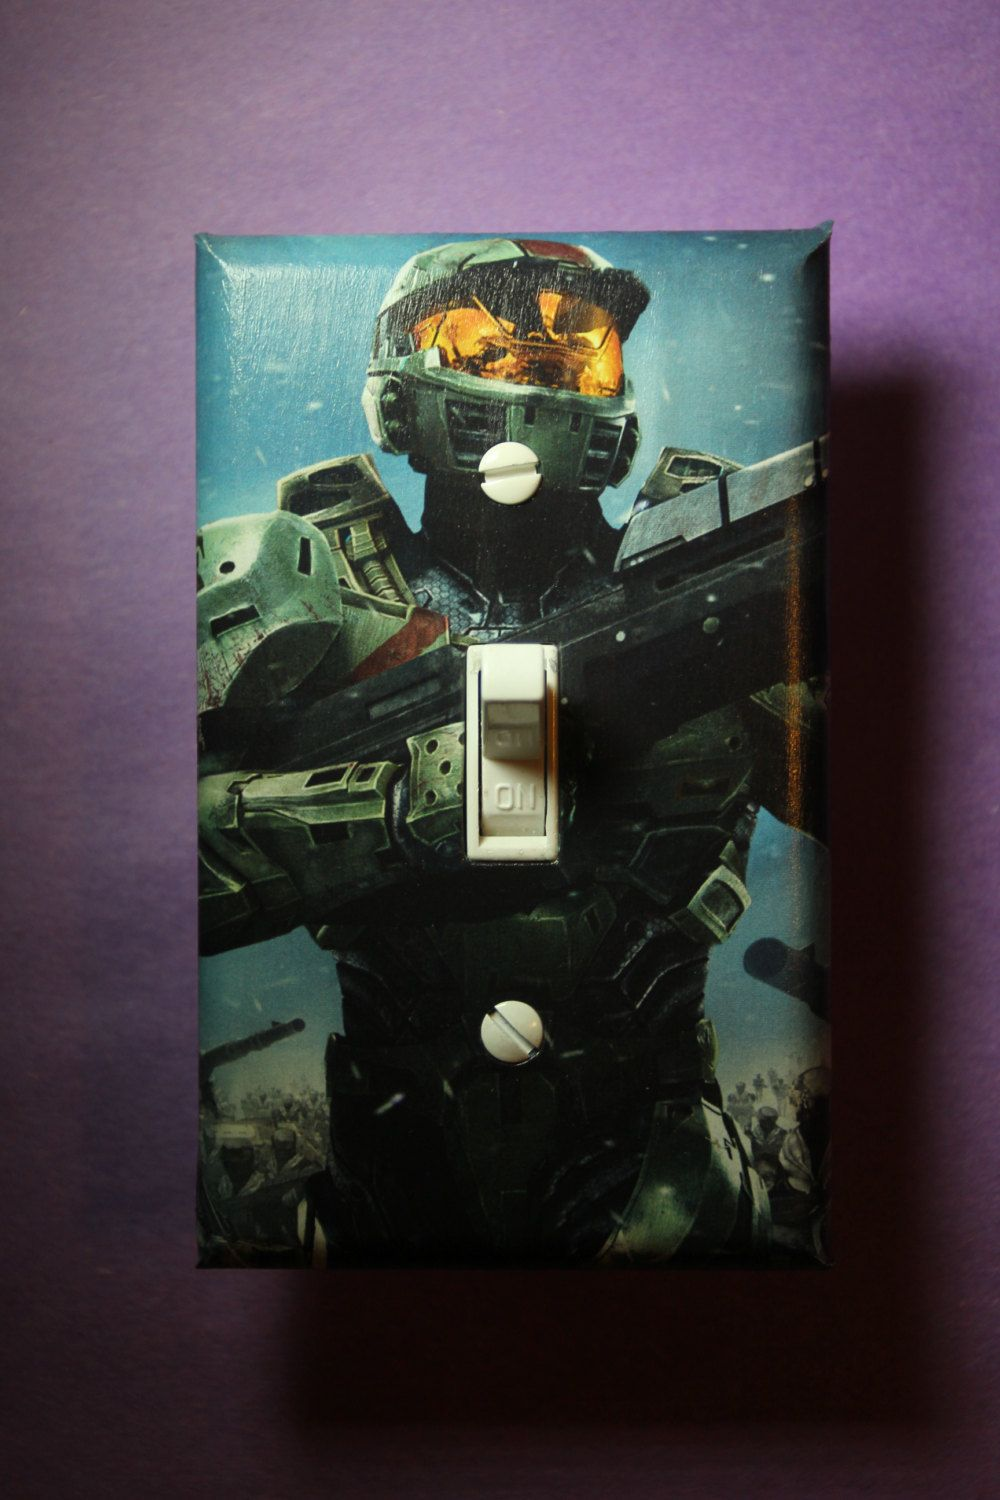 Halo Master Chief Light Switch Plate Cover R Room Home Decor Comic Book Gaming Microsoft Xbox